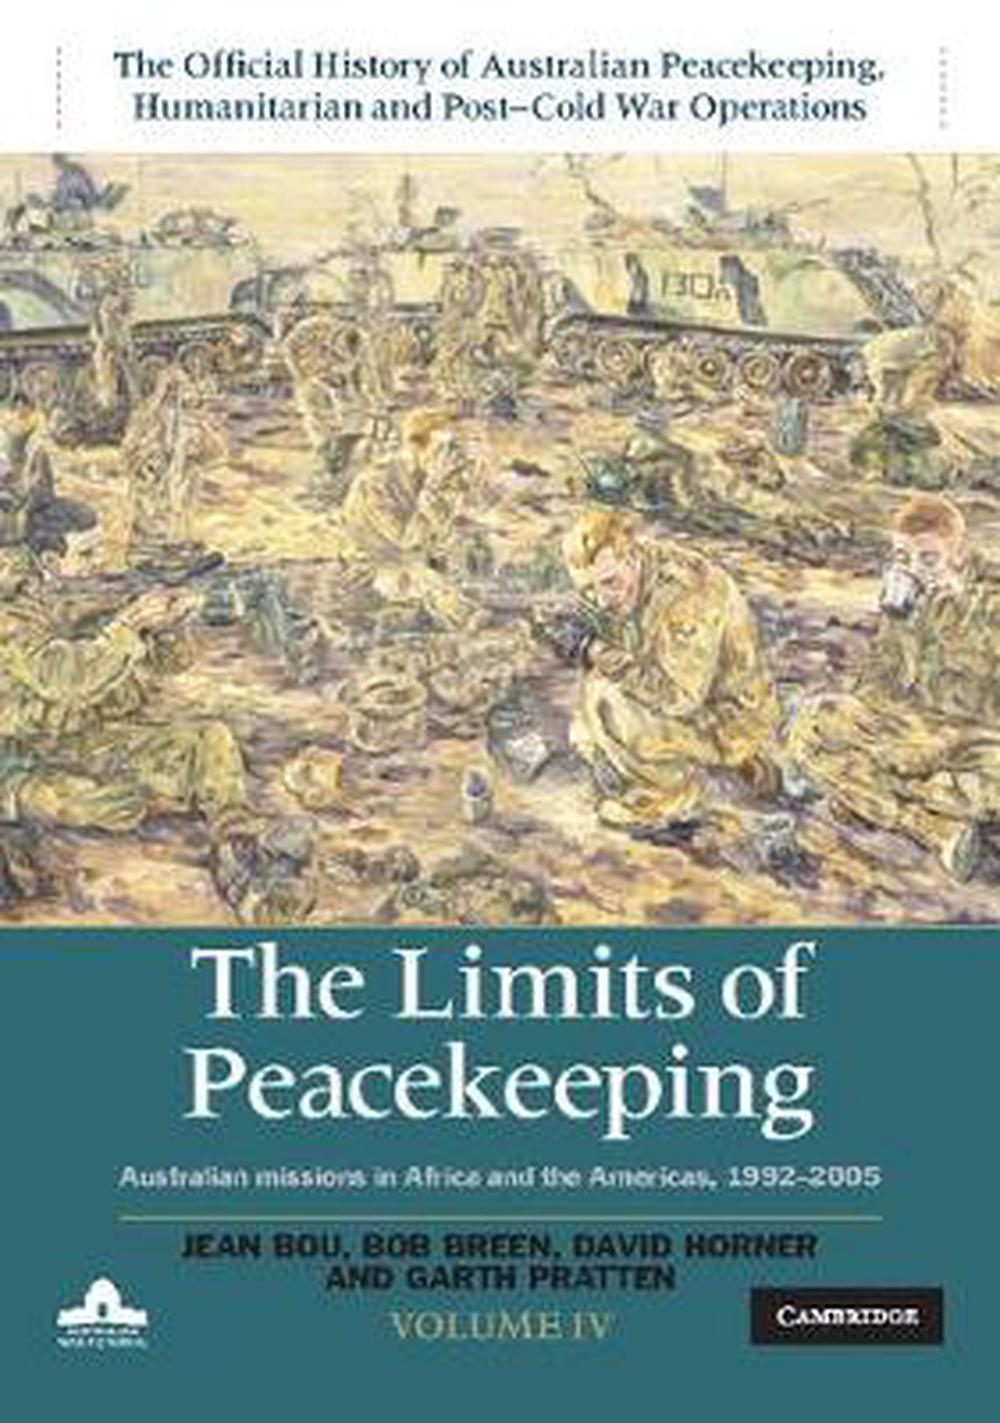 The Limits of Peacekeeping: Volume 4, The Official History of Australian Peacekeeping, Humanitarian and Post-Cold War Operations: Australian Missions in Africa and the Americas 1992-2005